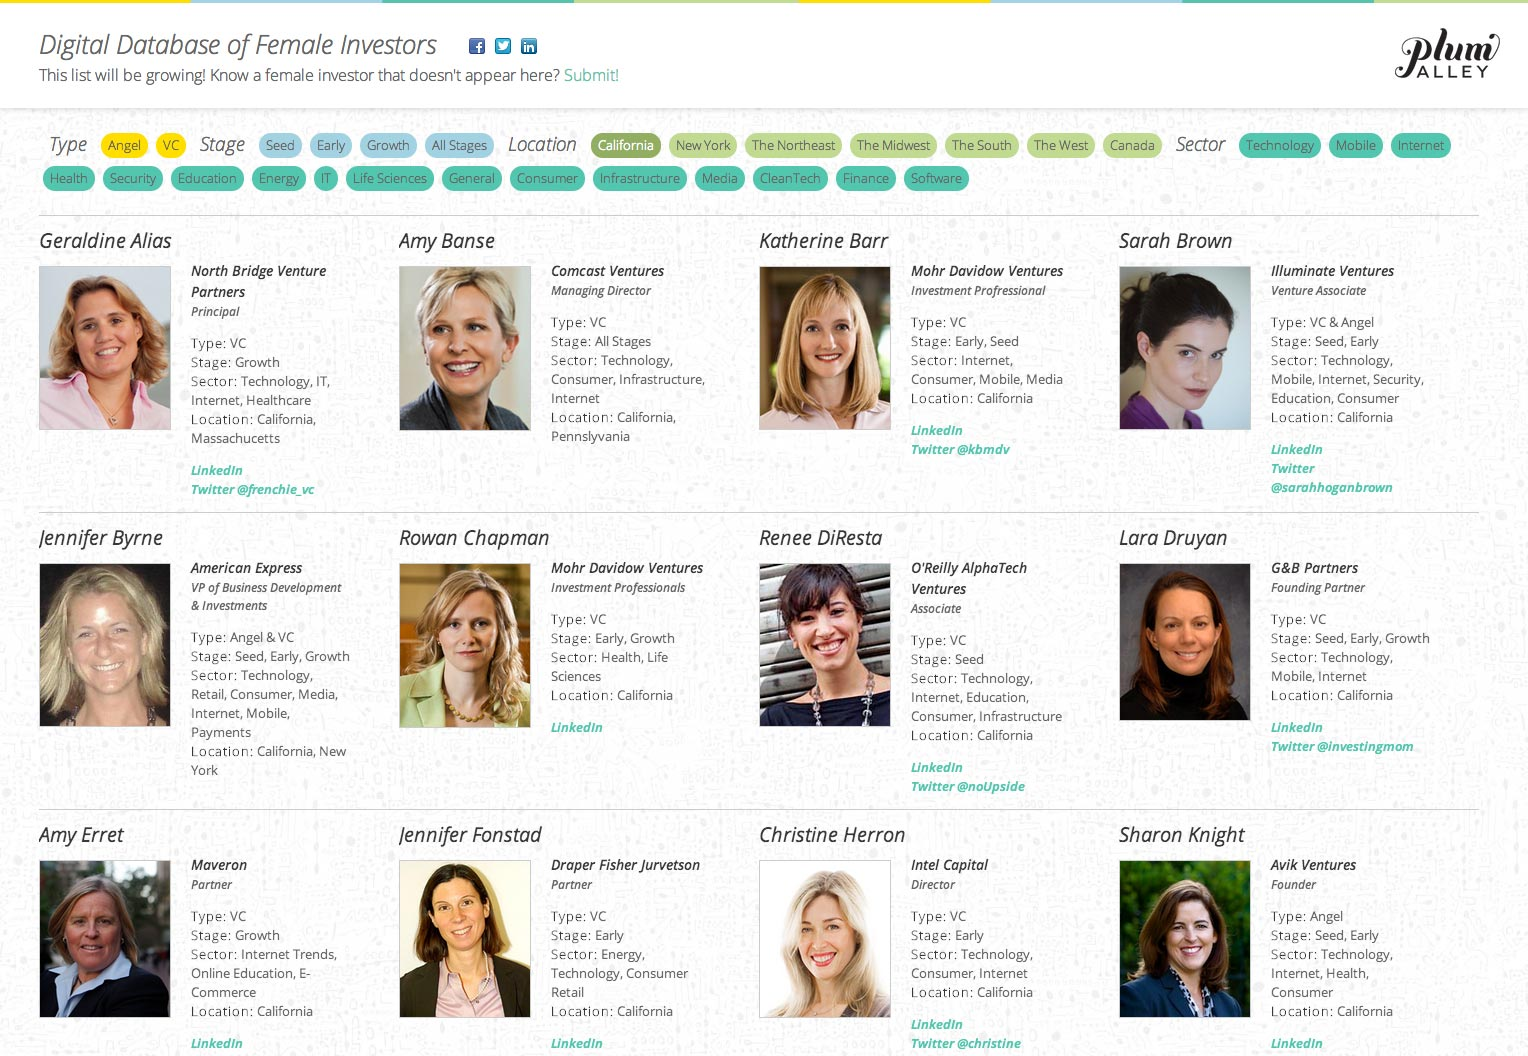 Digital Database of Female Investors